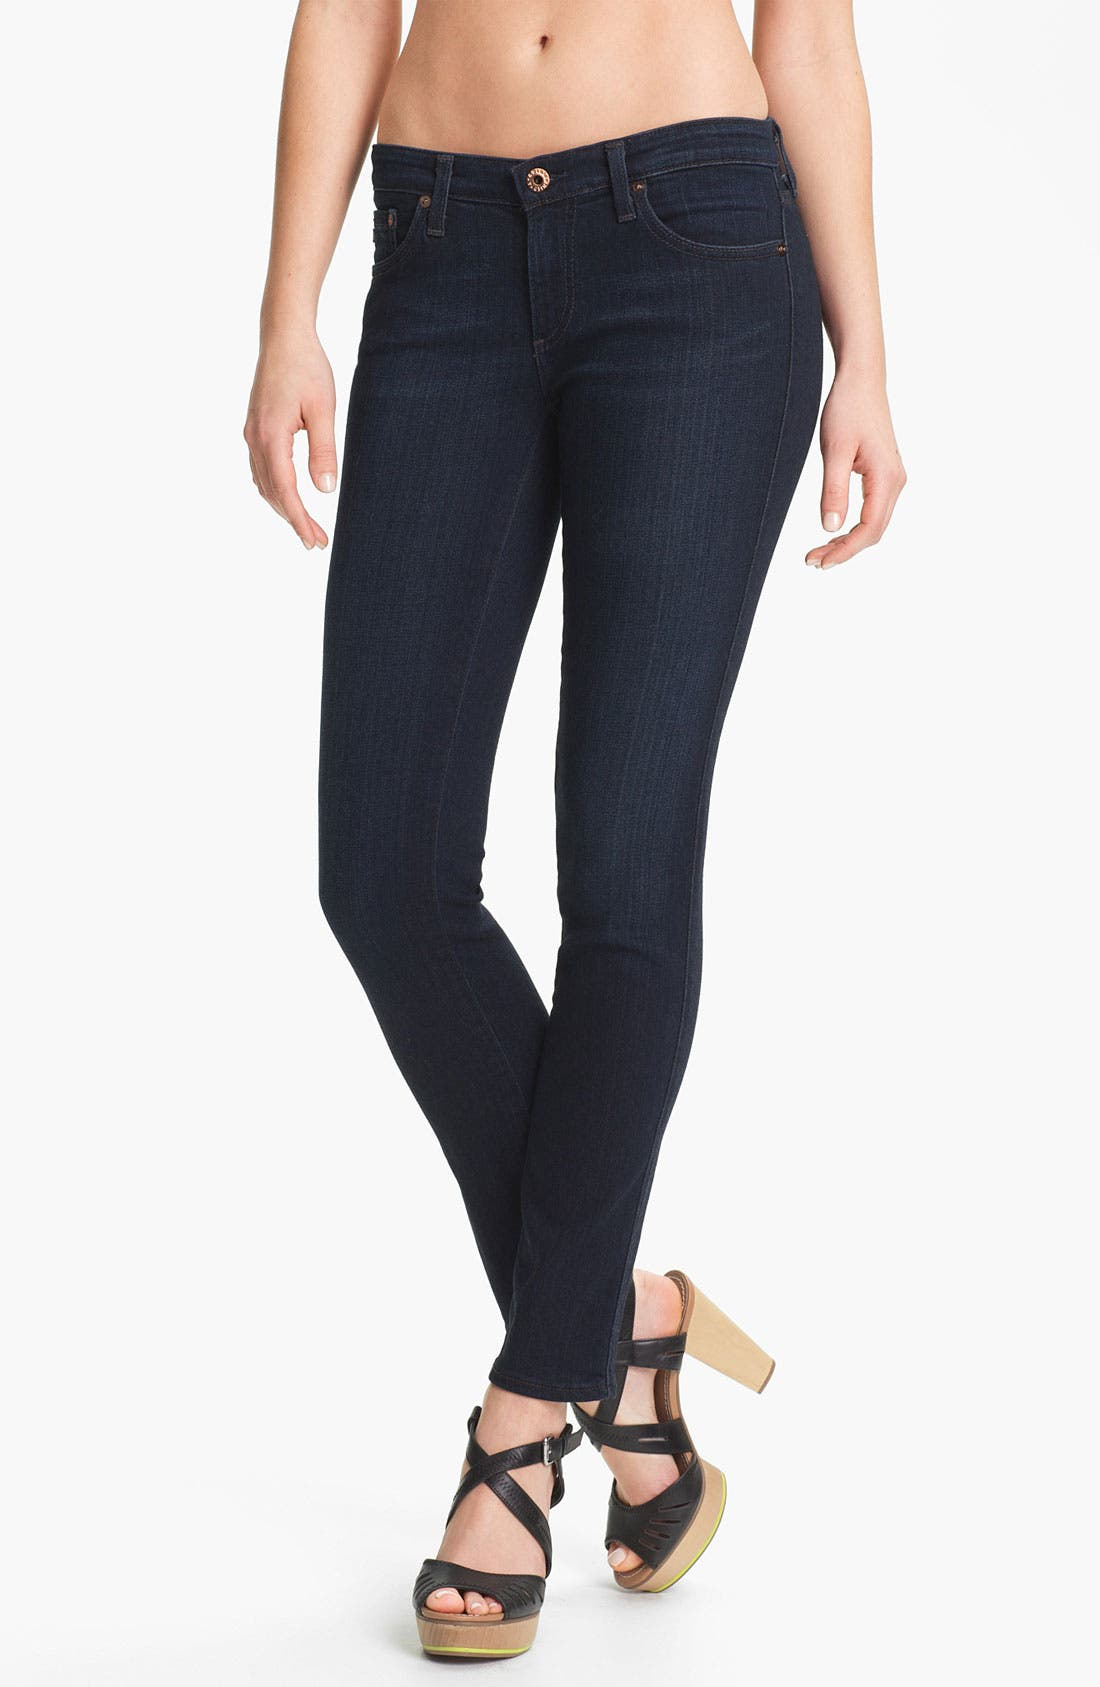 Alternate Image 1 Selected - AG Jeans 'Stilt' Cigarette Leg Stretch Jeans (Jetsetter)